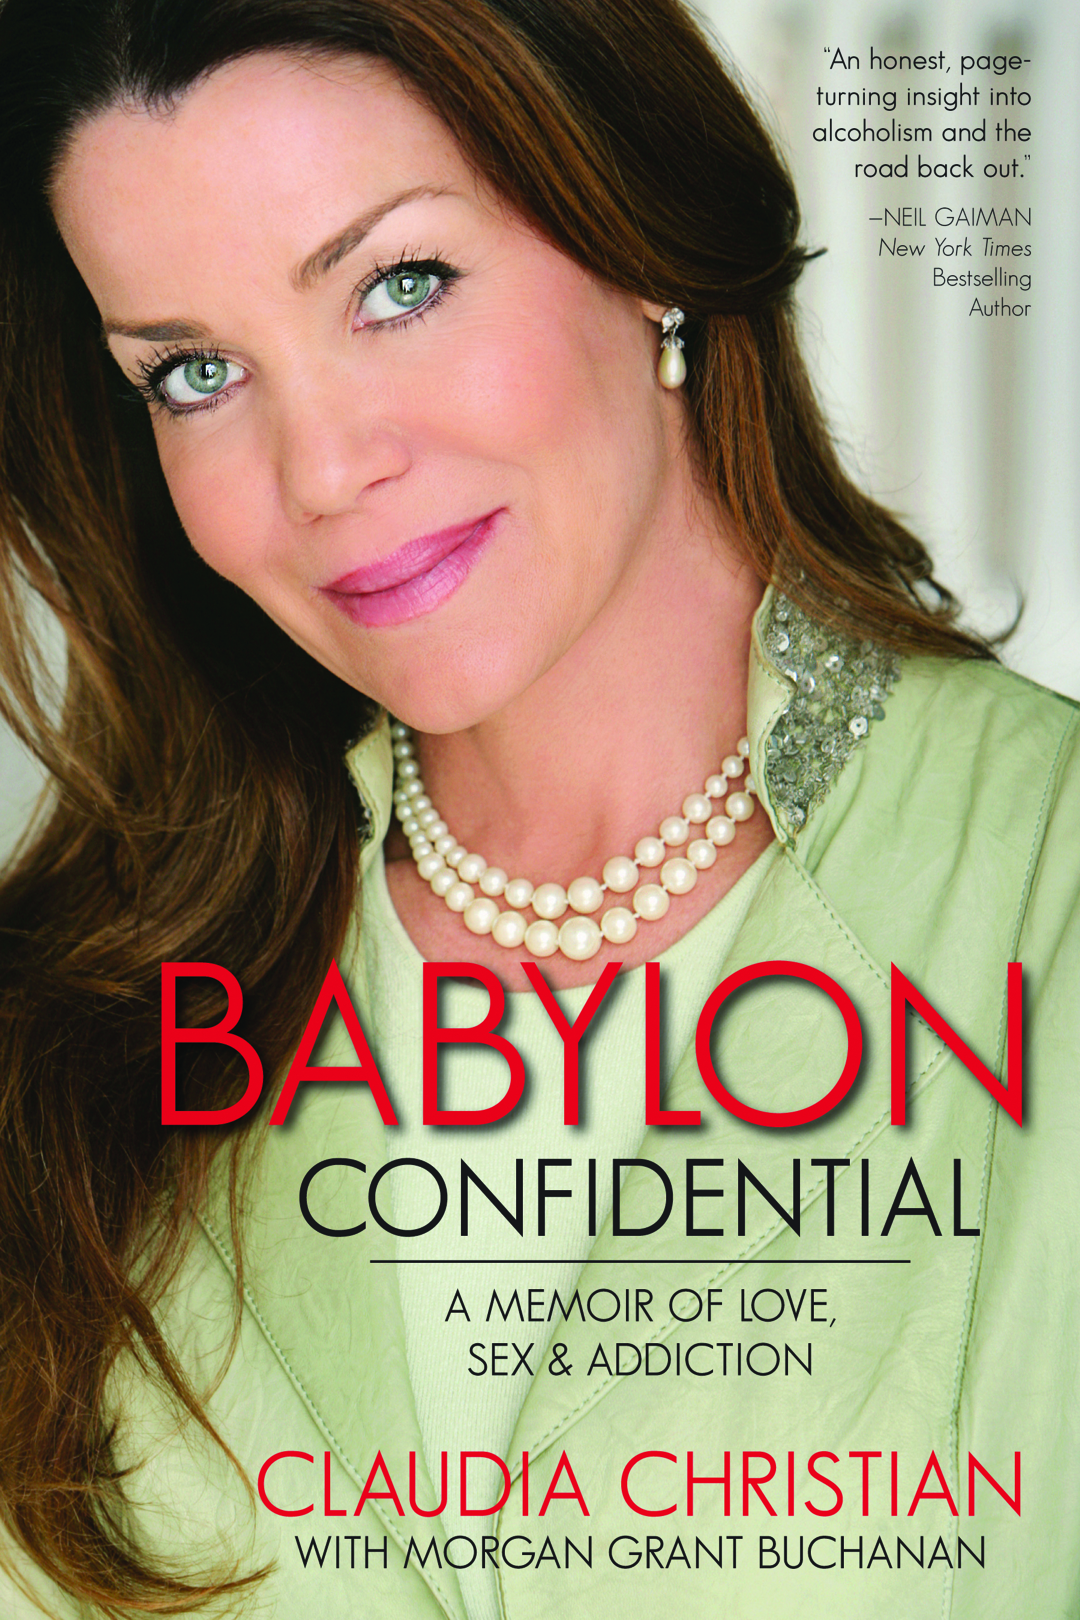 [Claudia Christian signing Babylon Confidential]